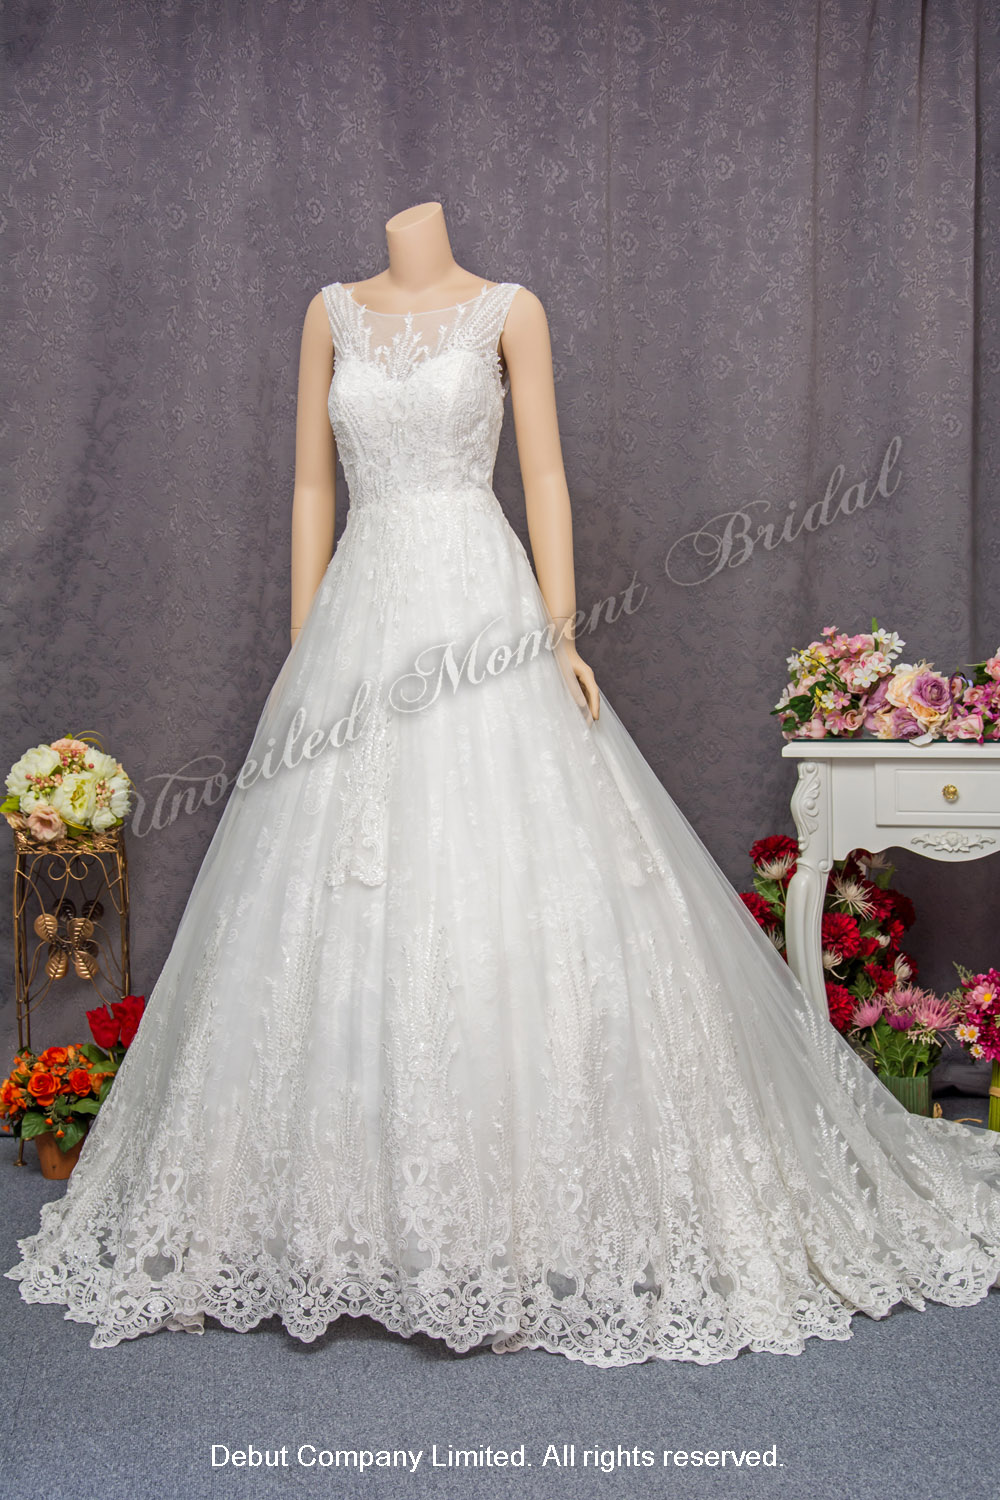 Sleeveless bridal gown with sweetheart and see-through boat neckline, see-through low back and decorated with lace appliques cathedral train 心形胸, 透視薄紗圓領, 蕾絲釘珠, 透視美背, 宮廷蕾絲花邊拖尾, 公主傘裙婚紗